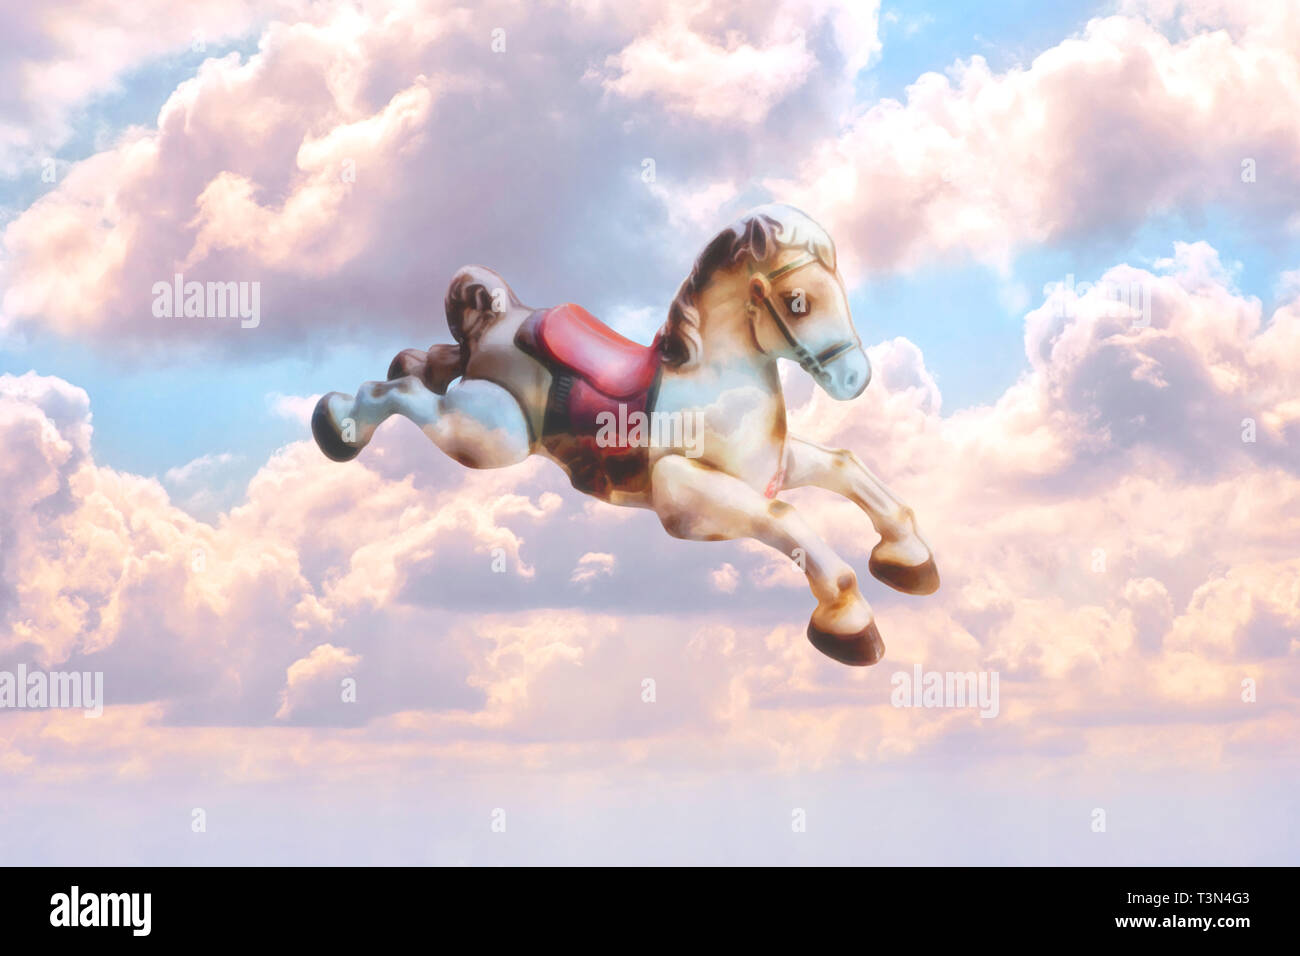 Concept image of an old-fashioned toy rocking horse flying through the sky, the pink clouds reflecting on its body Stock Photo